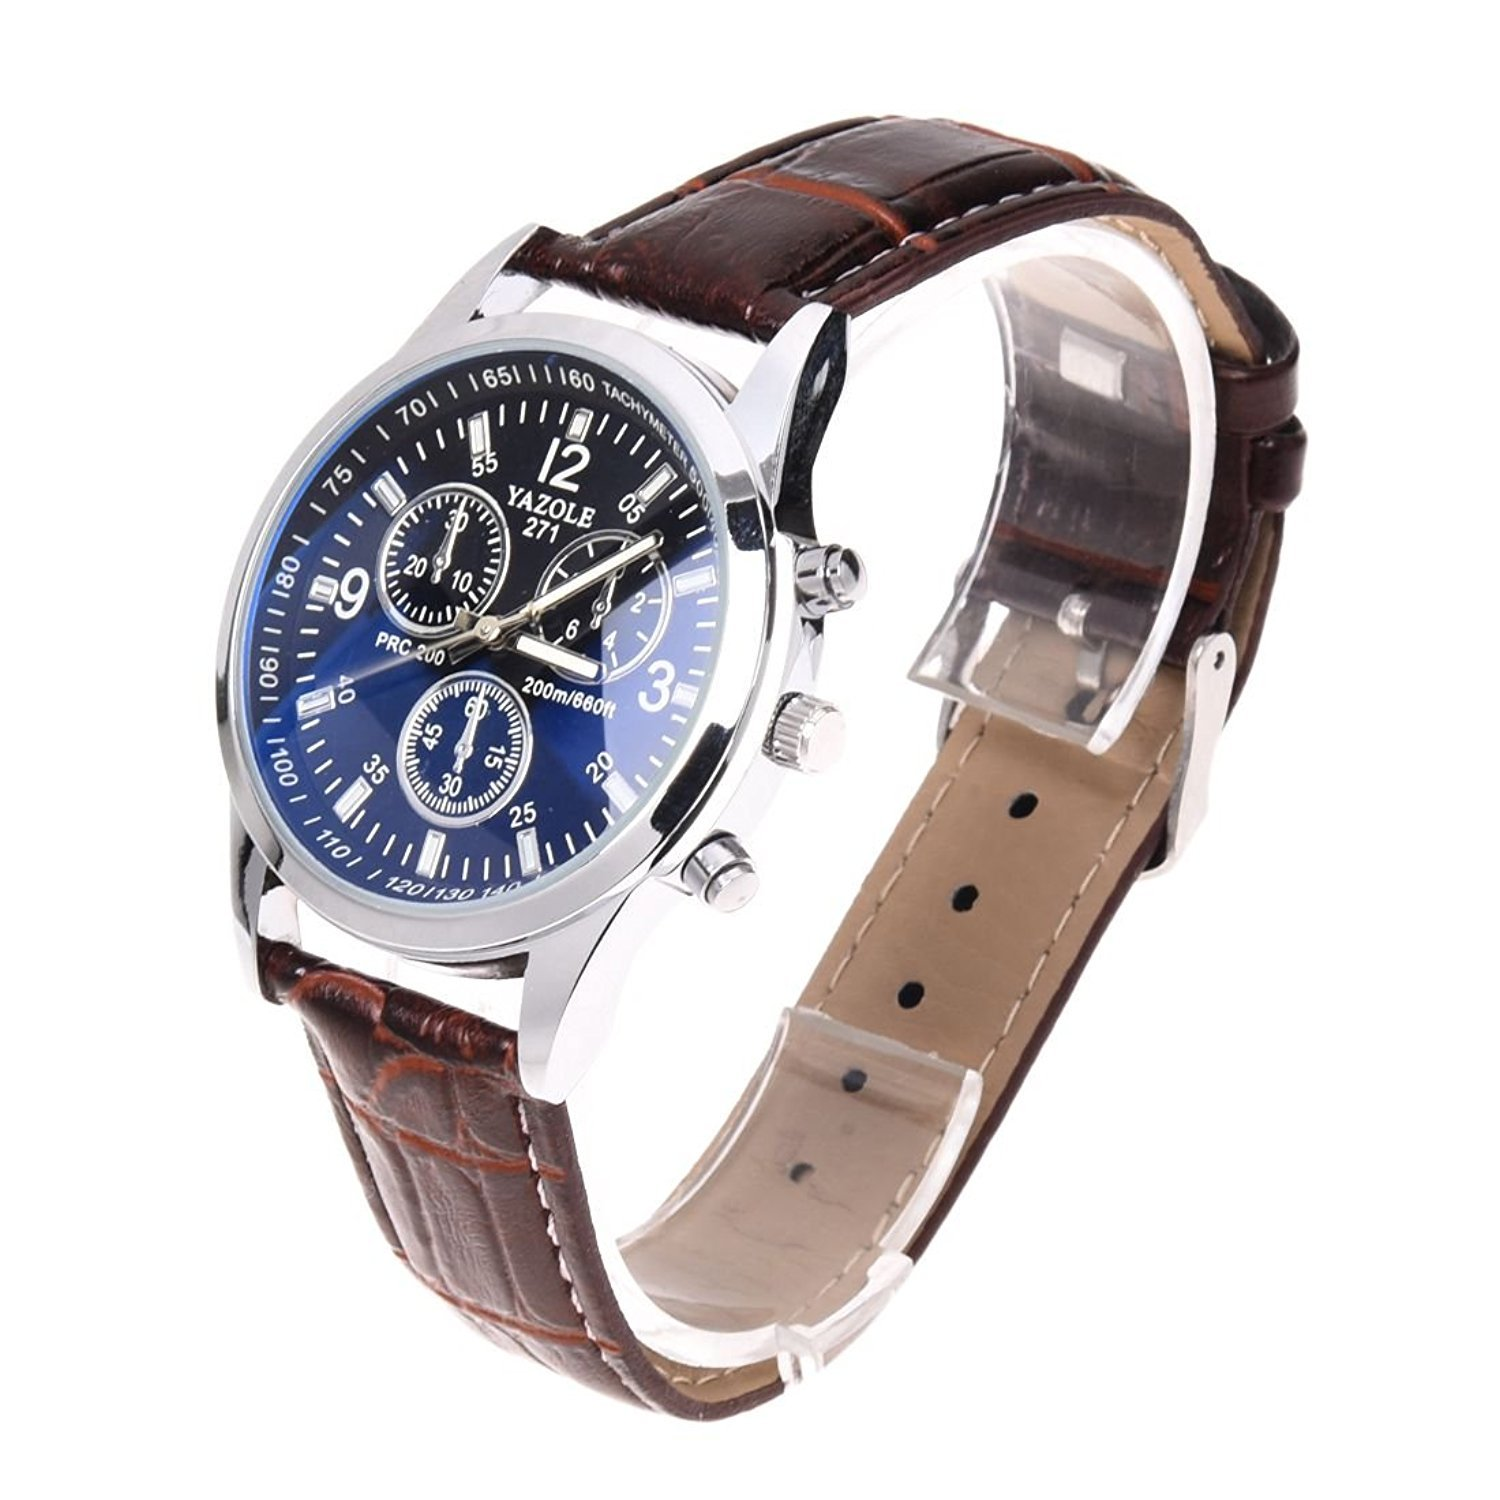 Amazon.com: YAZOLE New Fashion Mens Date Leather Stainless Steel Military Sport Quartz Wrist Watch: Watches